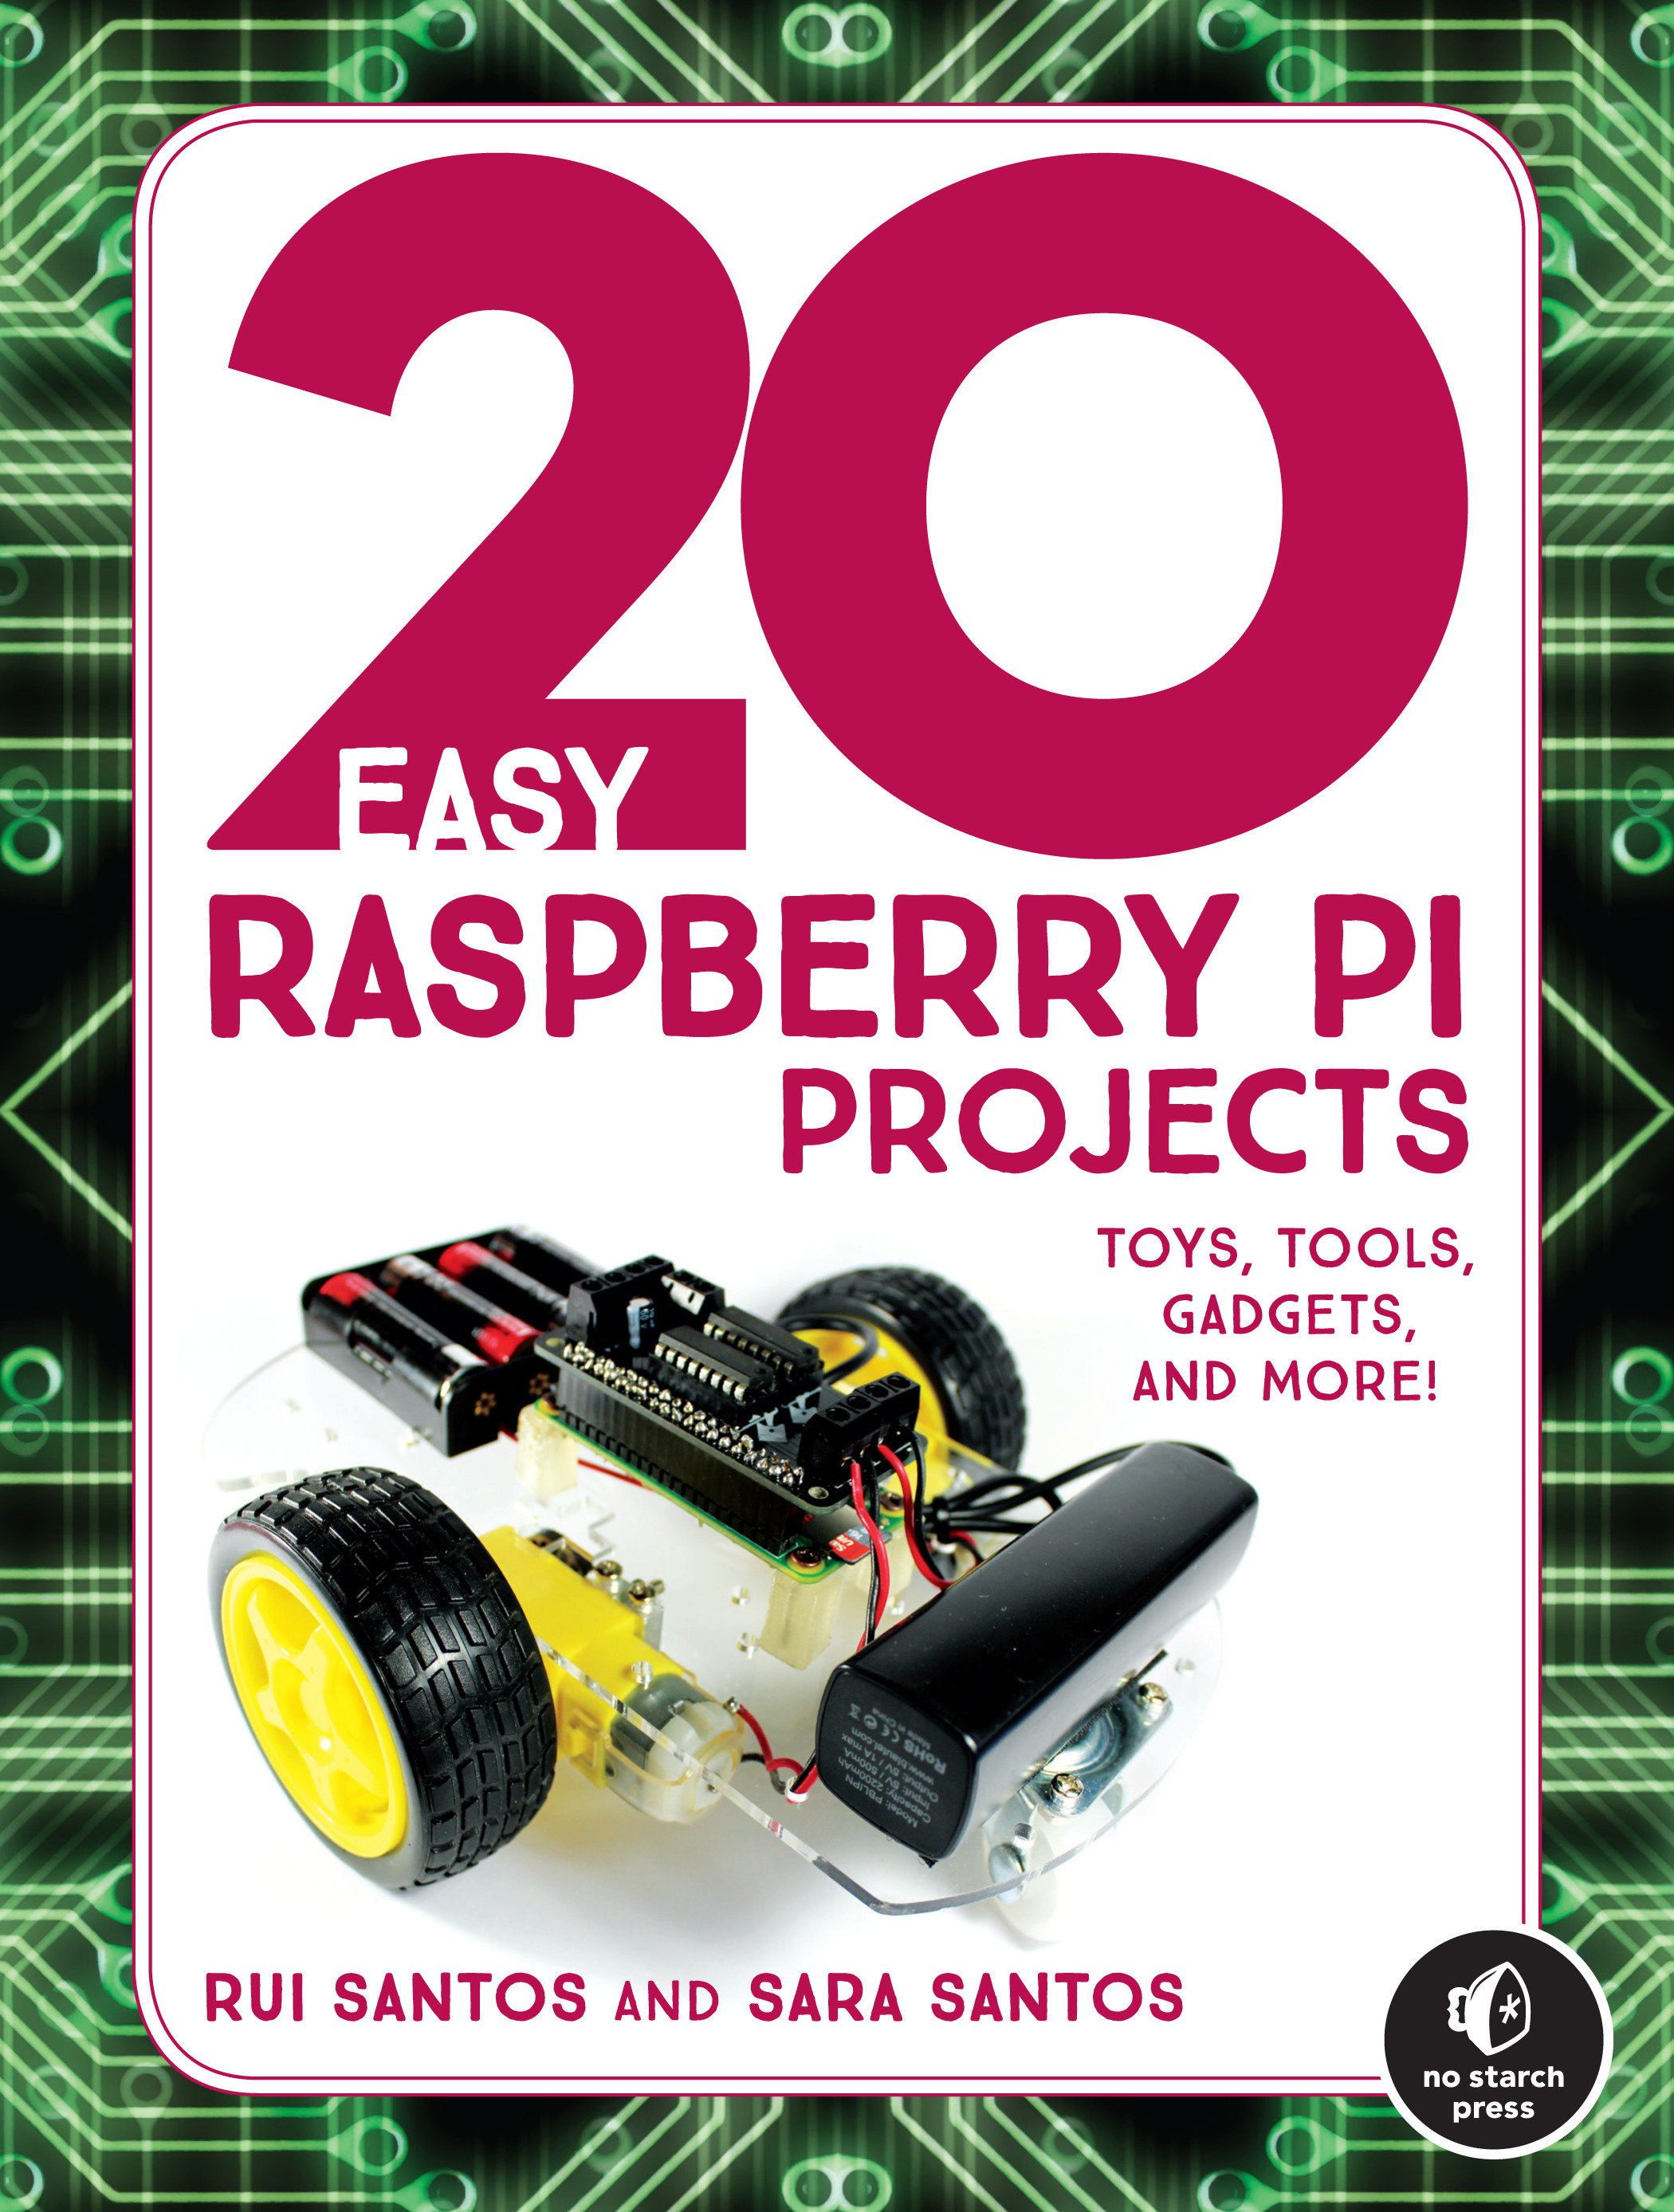 20 Easy Raspberry Pi Projects Toys, Tools, Gadgets, and More!